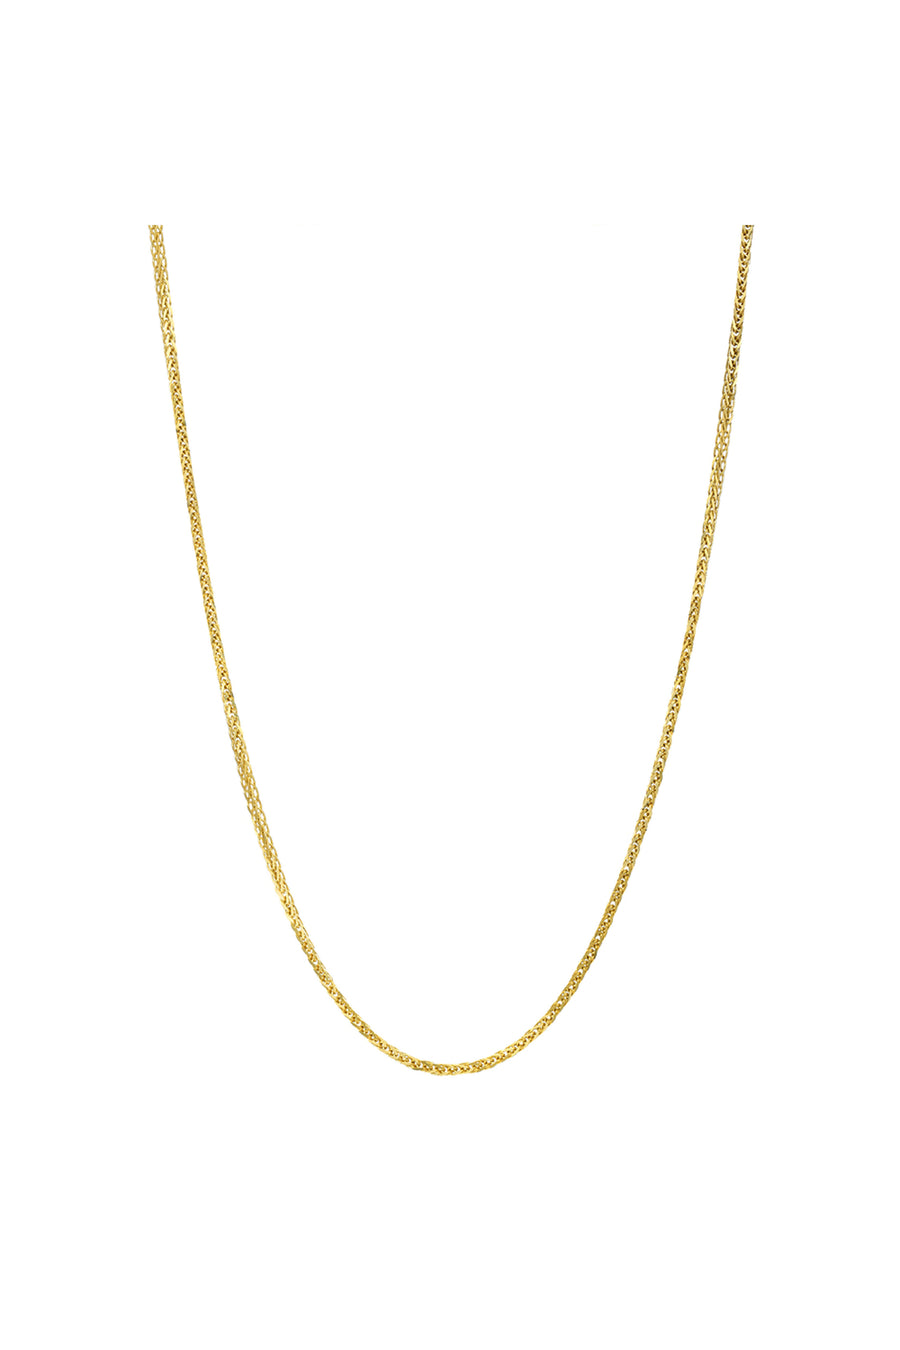 "14K Gold 24"" Foxtail Chain"